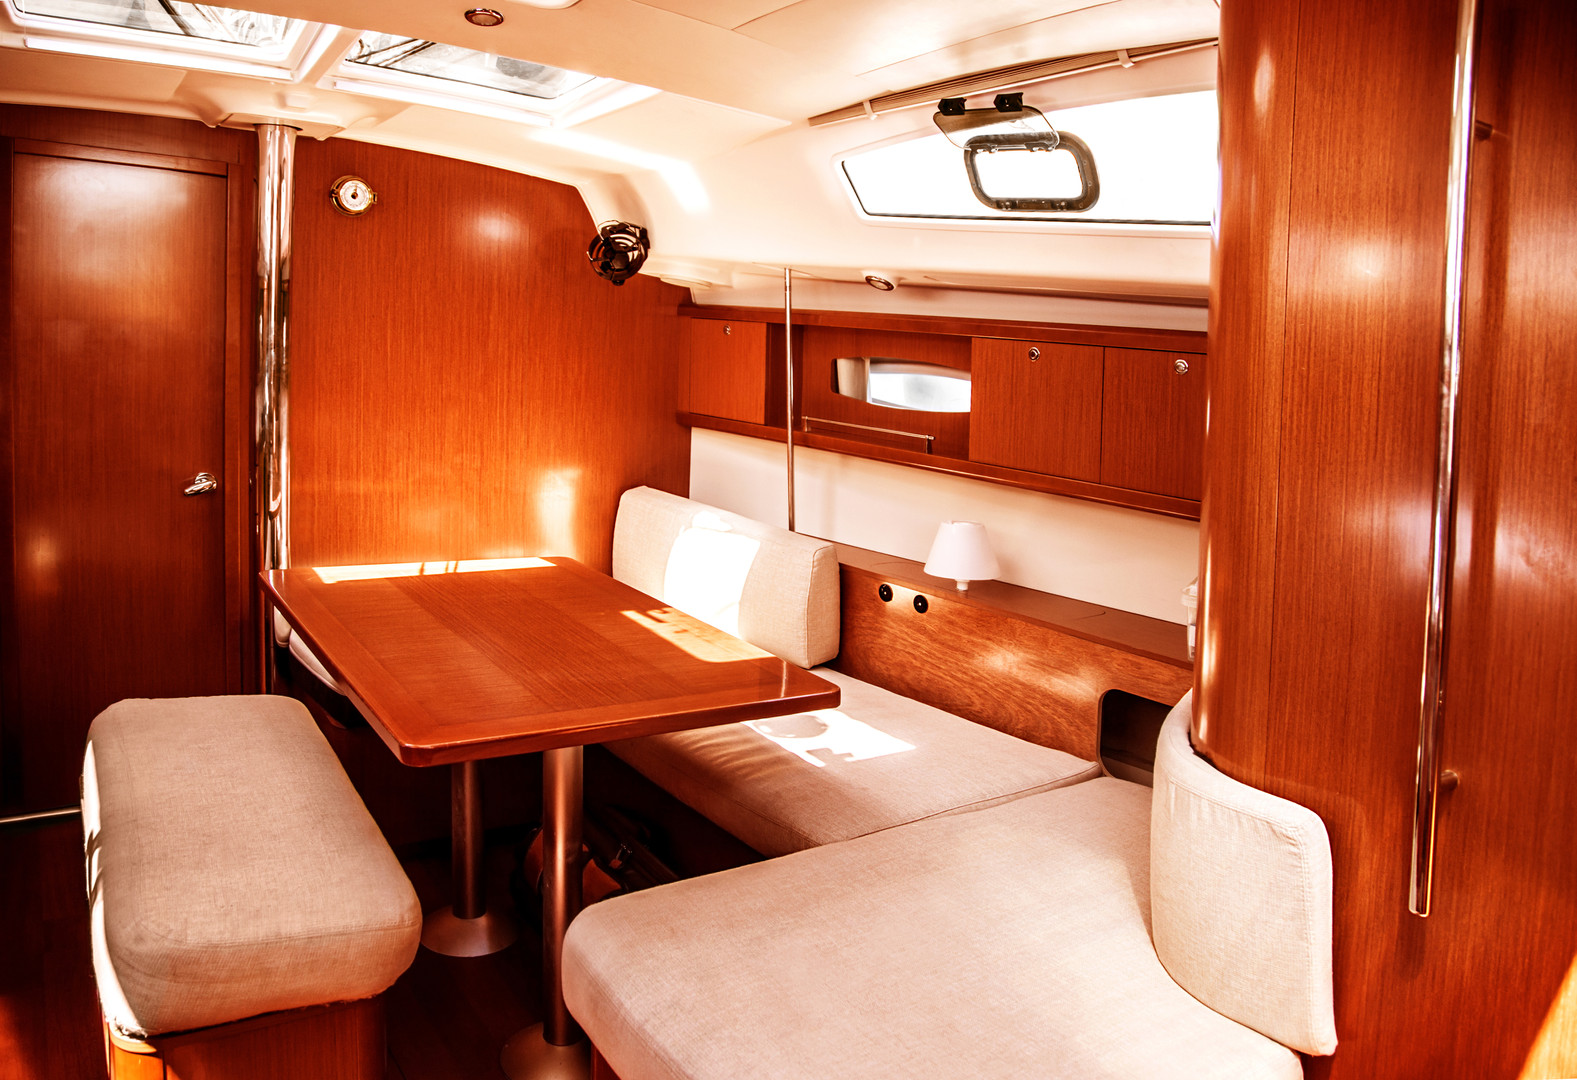 Image of luxury ship interior, comfortab